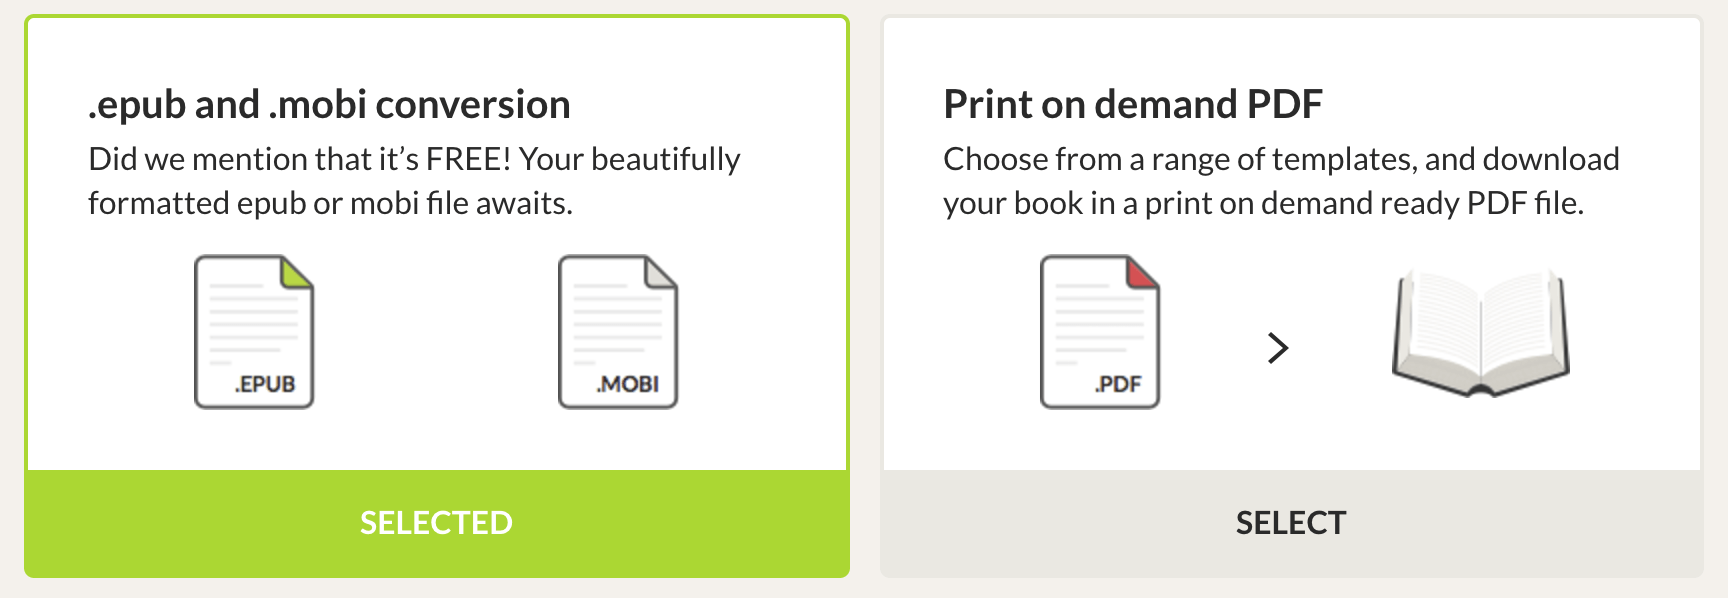 EPUB and PDF conversion